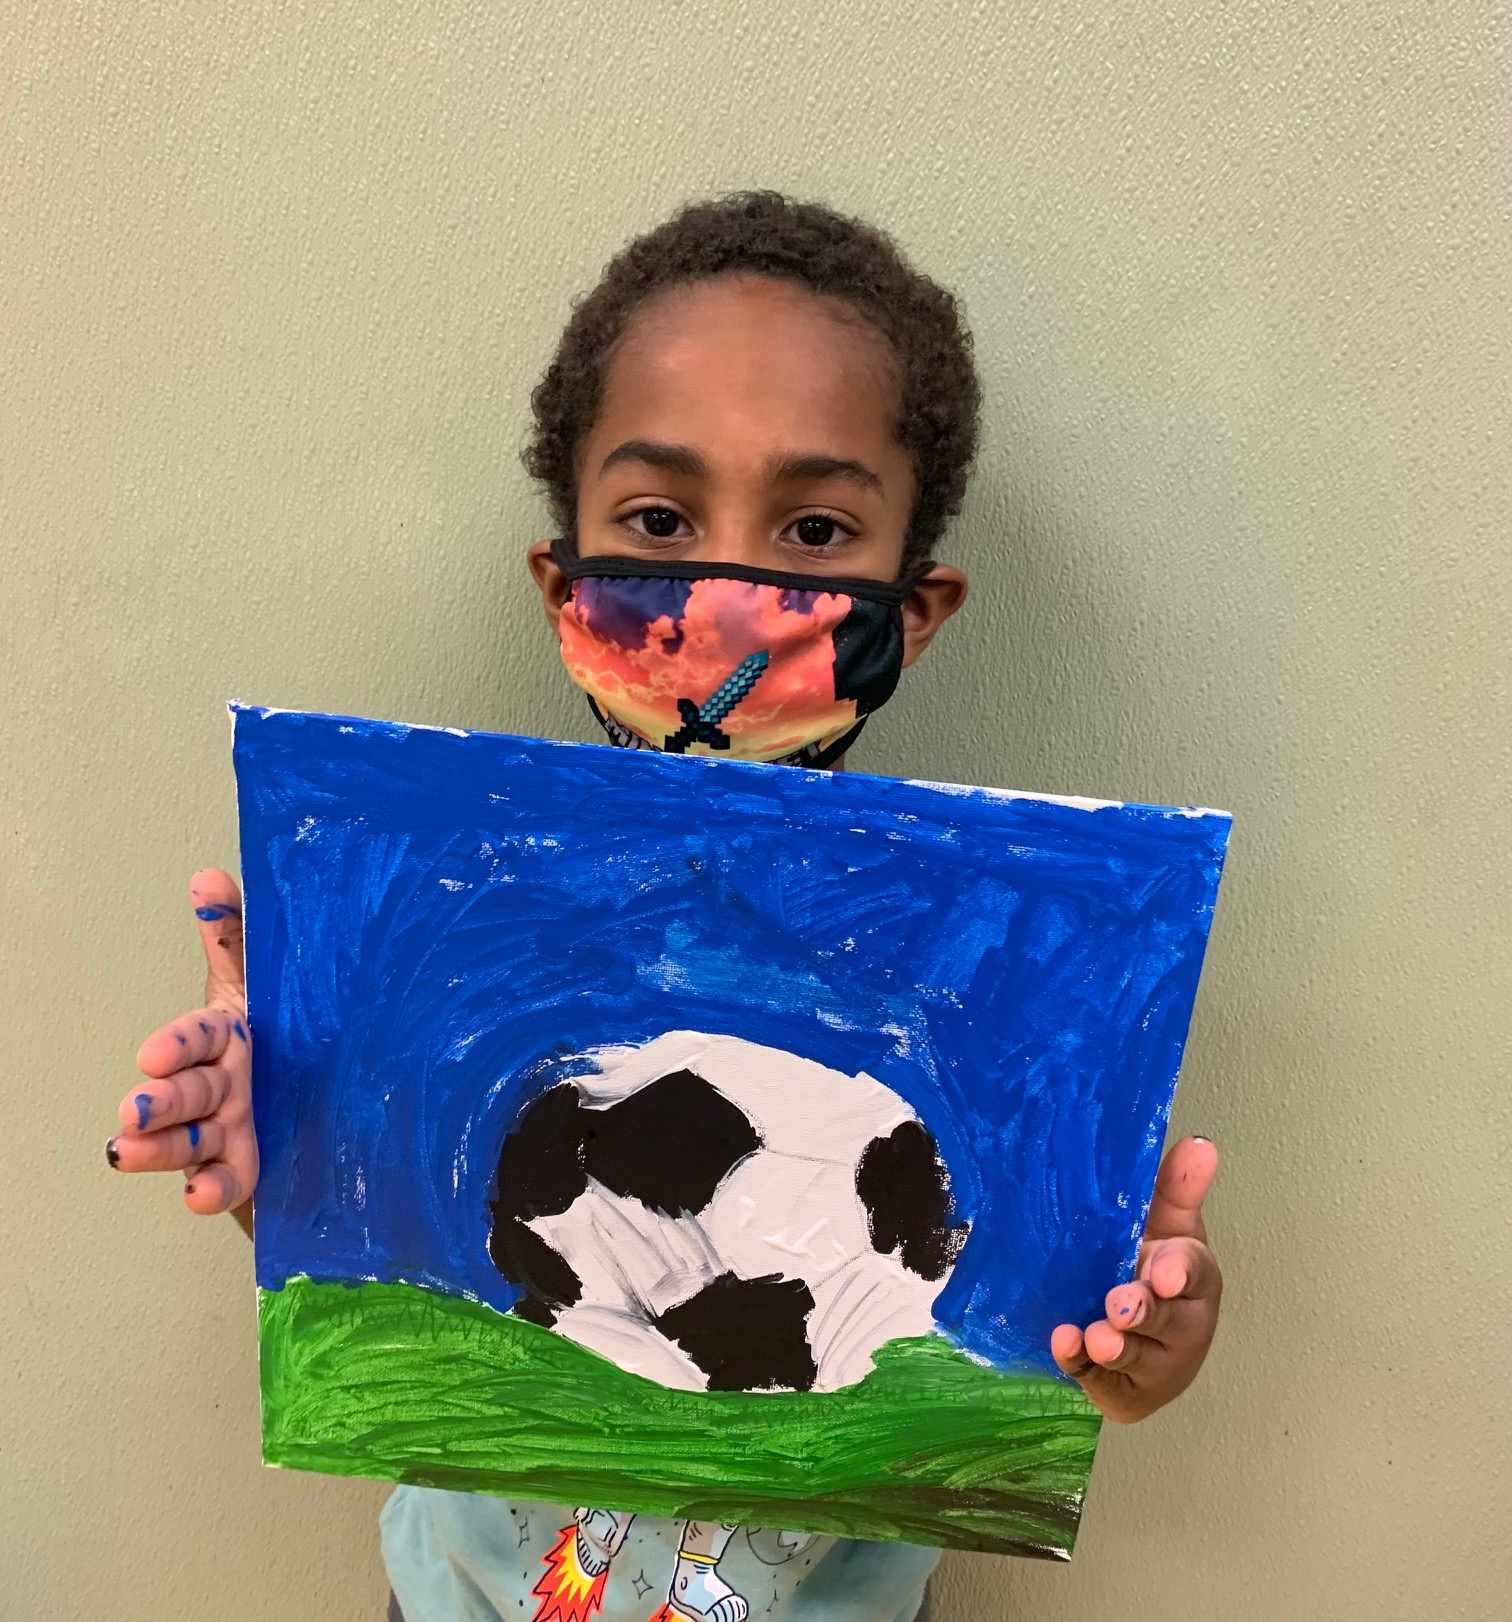 Soccerball painting Image number 6